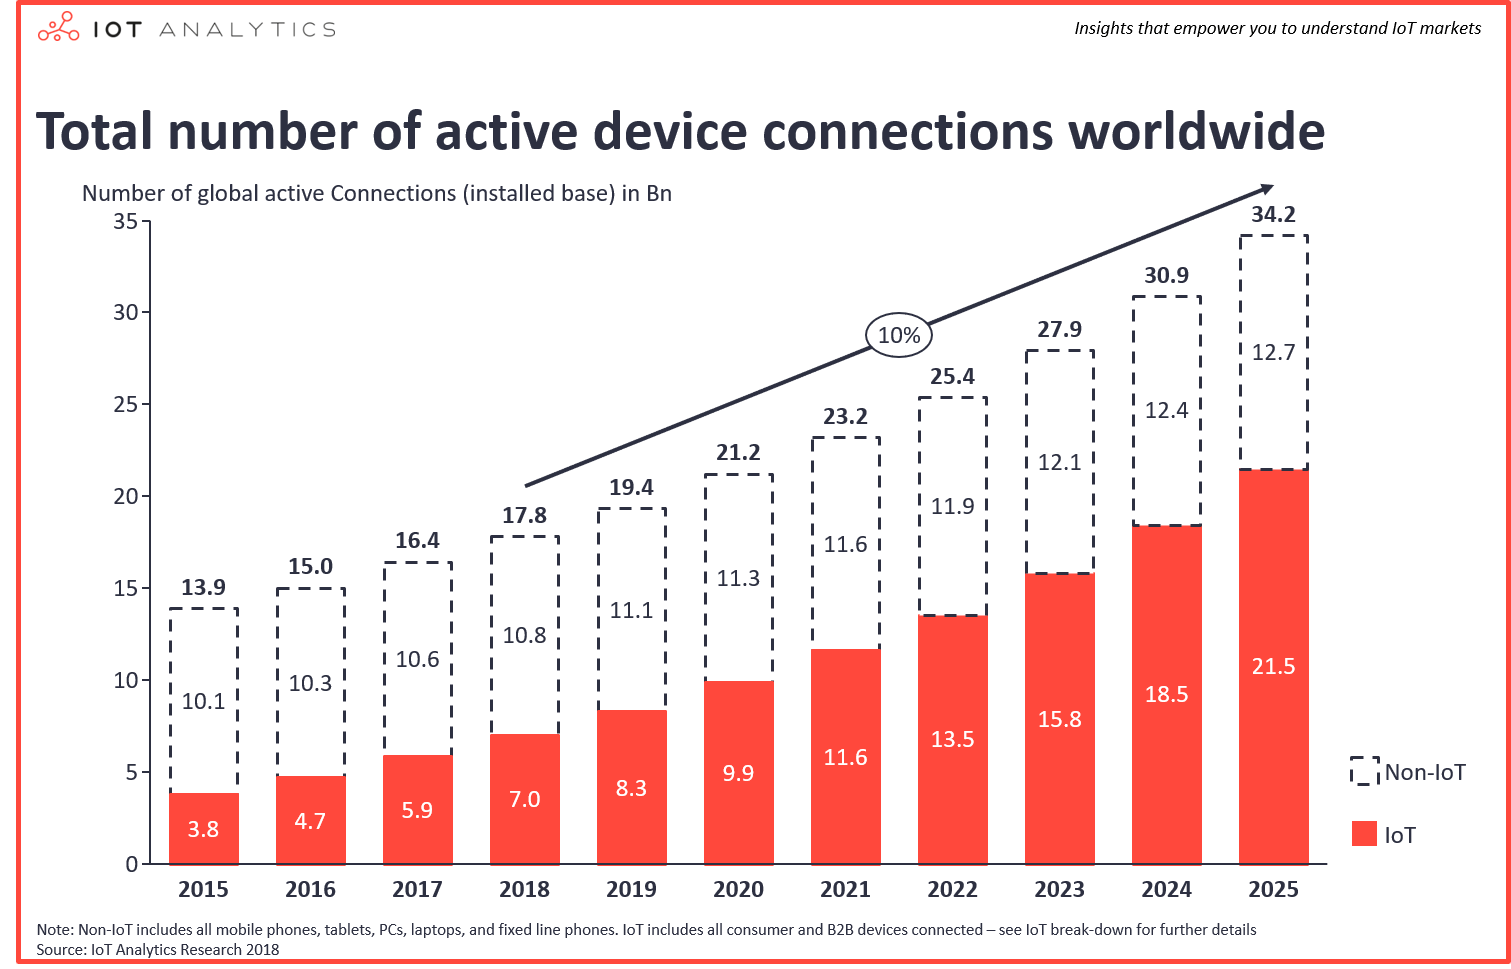 Number of global device connections 2015-2025 - Number of IoT Devices